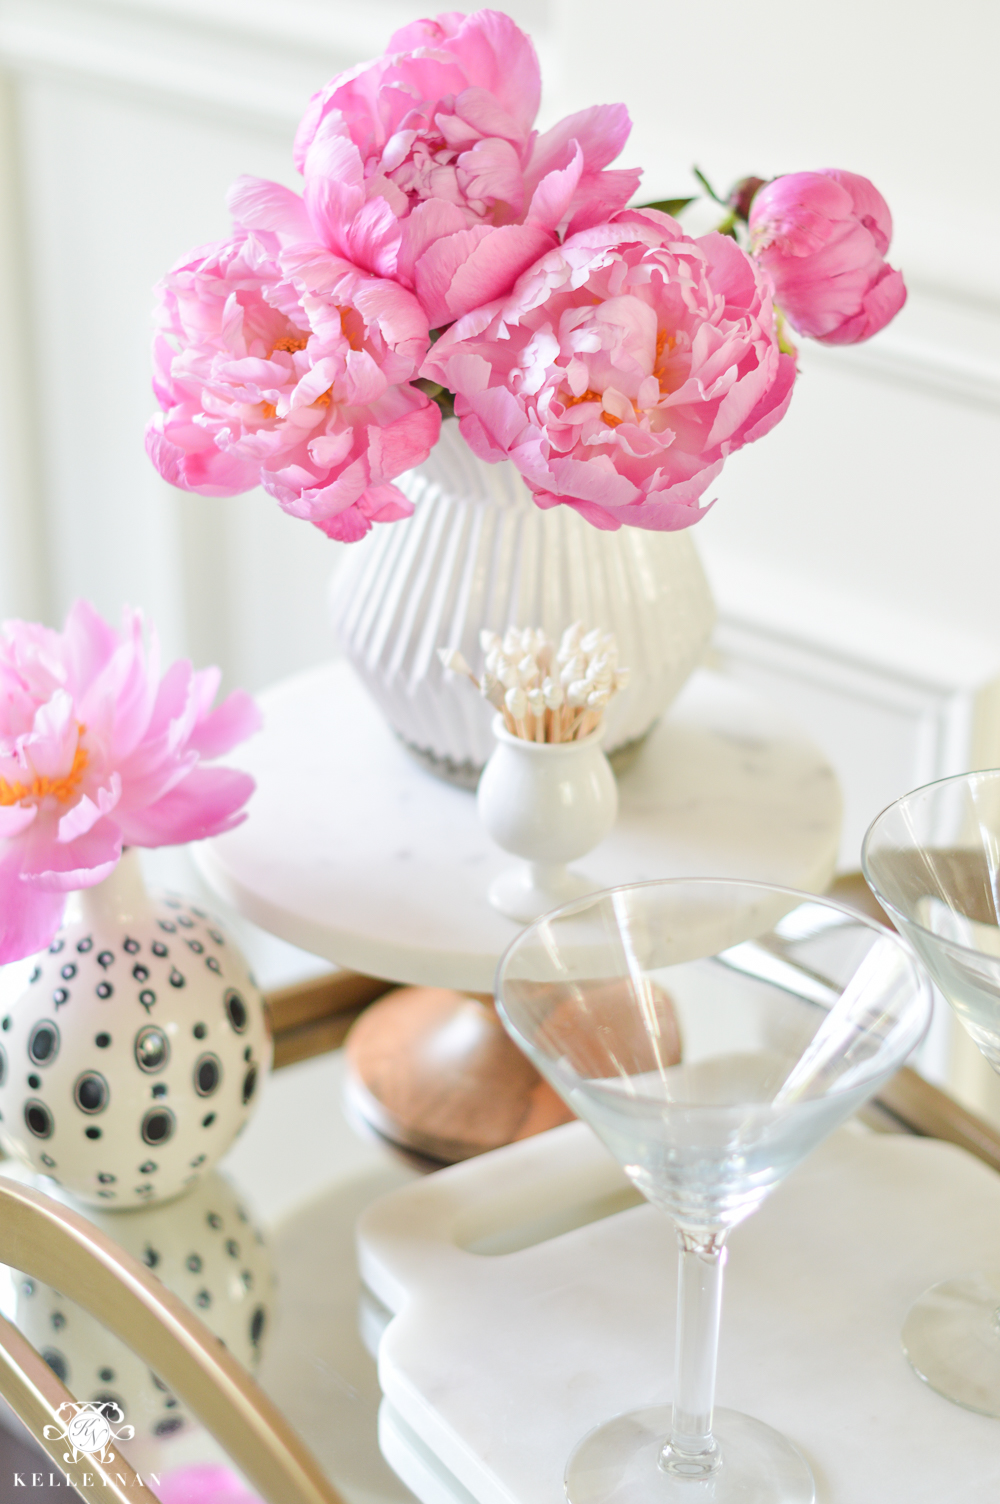 Easy Tropical Bar Cart with Peonies and Pineapple-how to style a bar cart with flowers